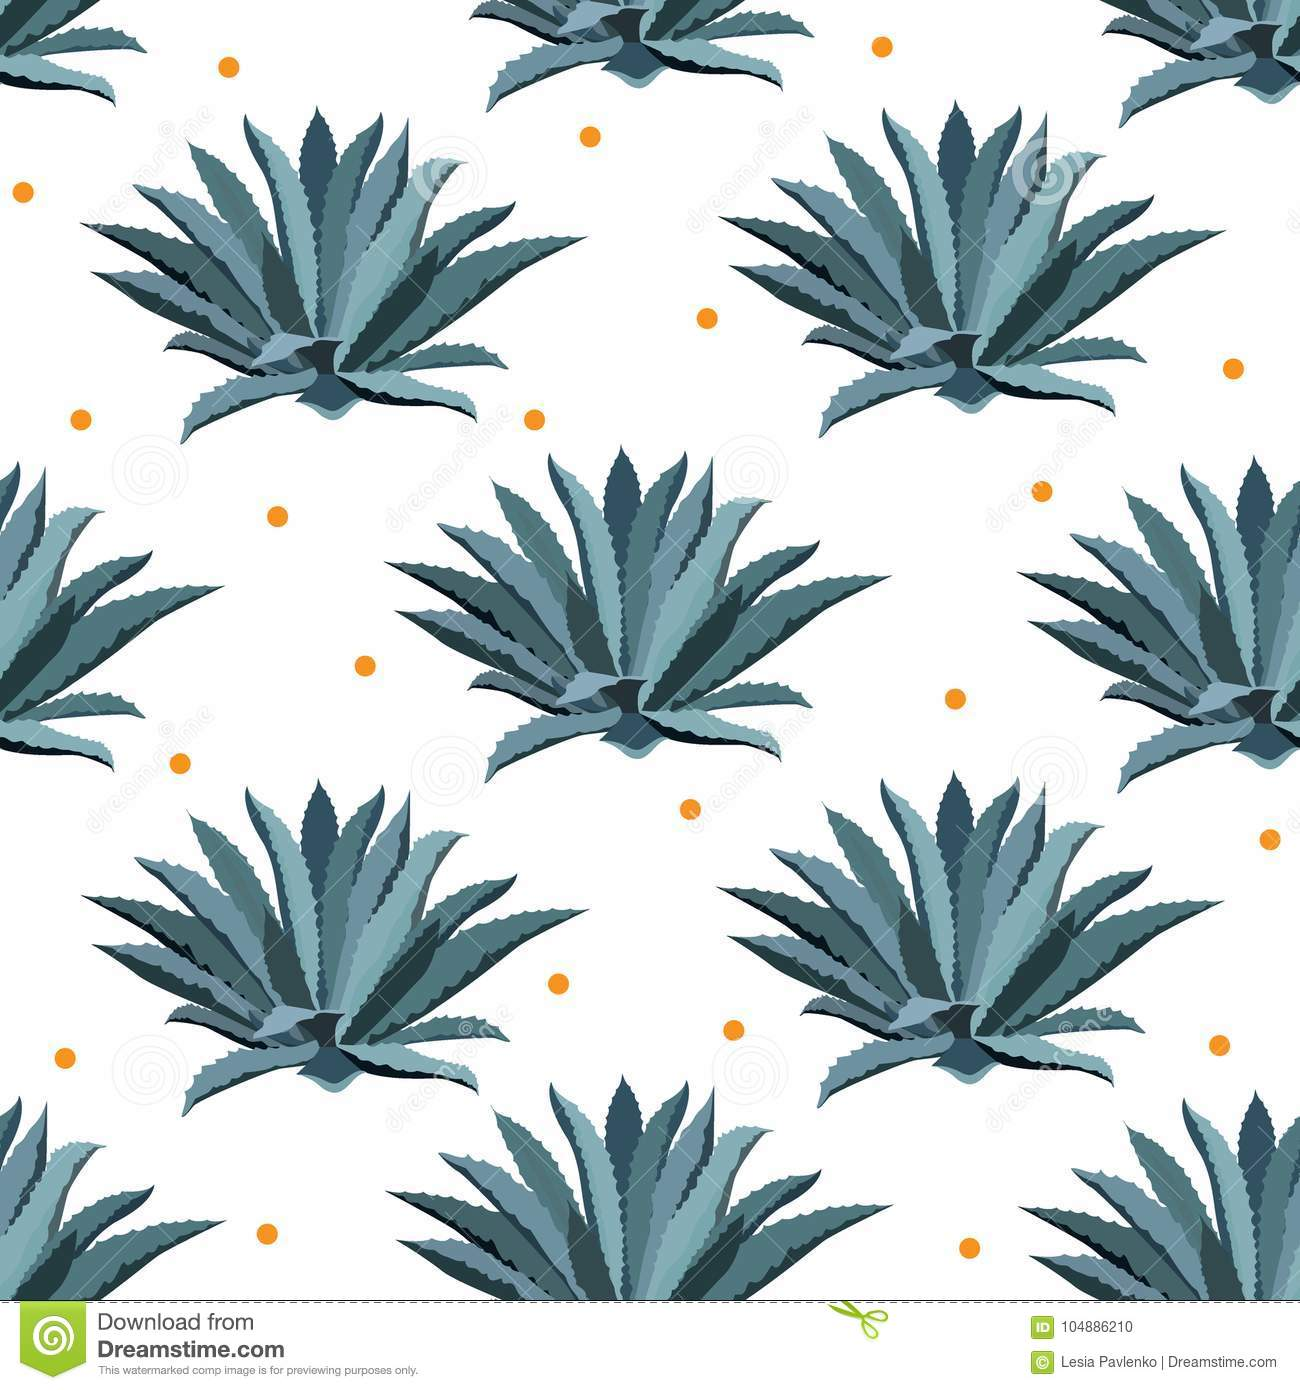 Blue agave vector seamless pattern. Background for tequila packs, superfood with agave syrop, and other. Succulent